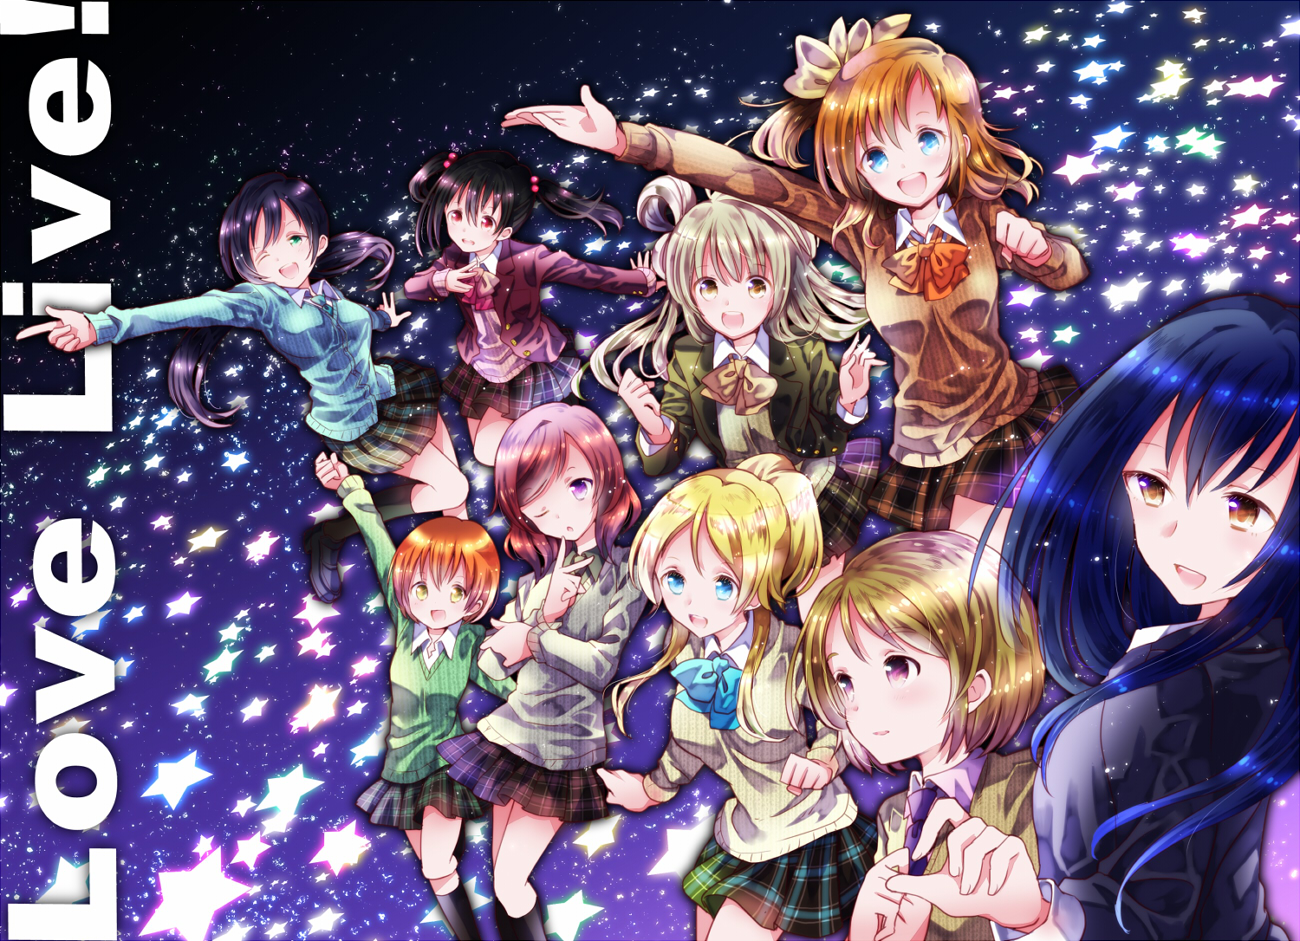 Love Live Wallpaper Hd For Pc : Love Live HD Wallpapers (High Quality) - All HD Wallpapers